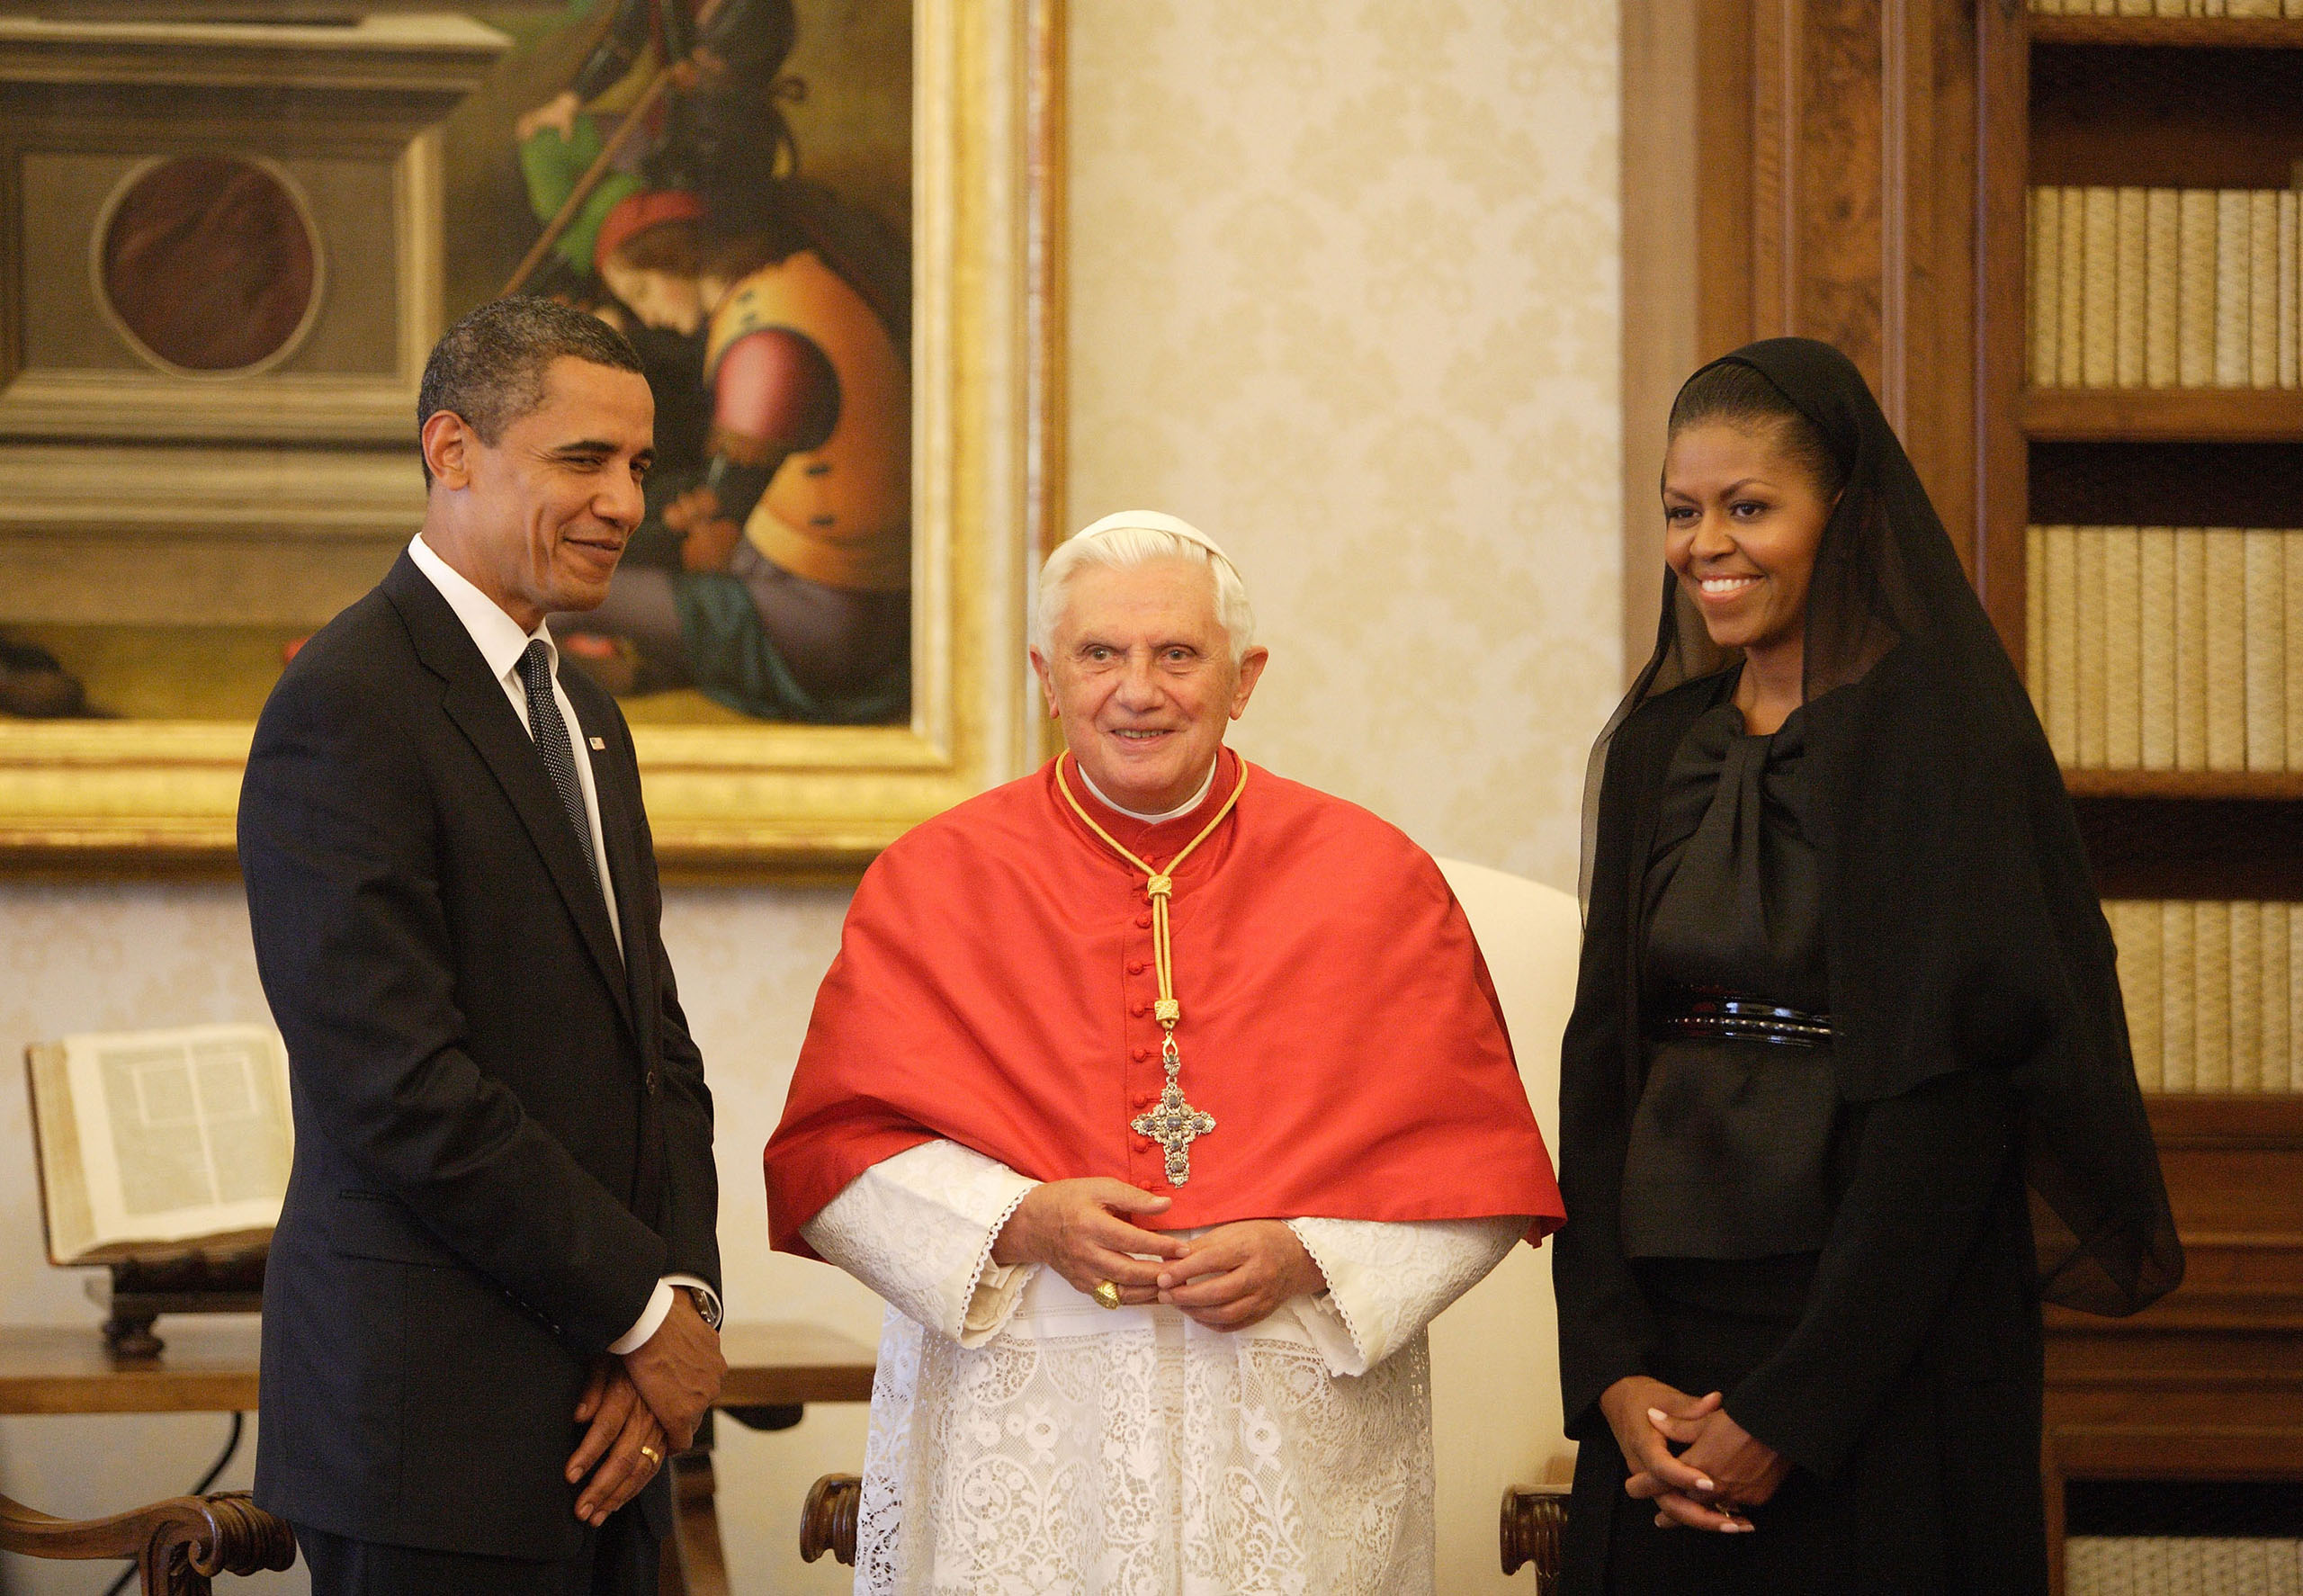 US President Barack Obama (L) and First Lady Michelle Obama meet with Pope Benedict XVI in his library at the Vatican on July 10, 2009.